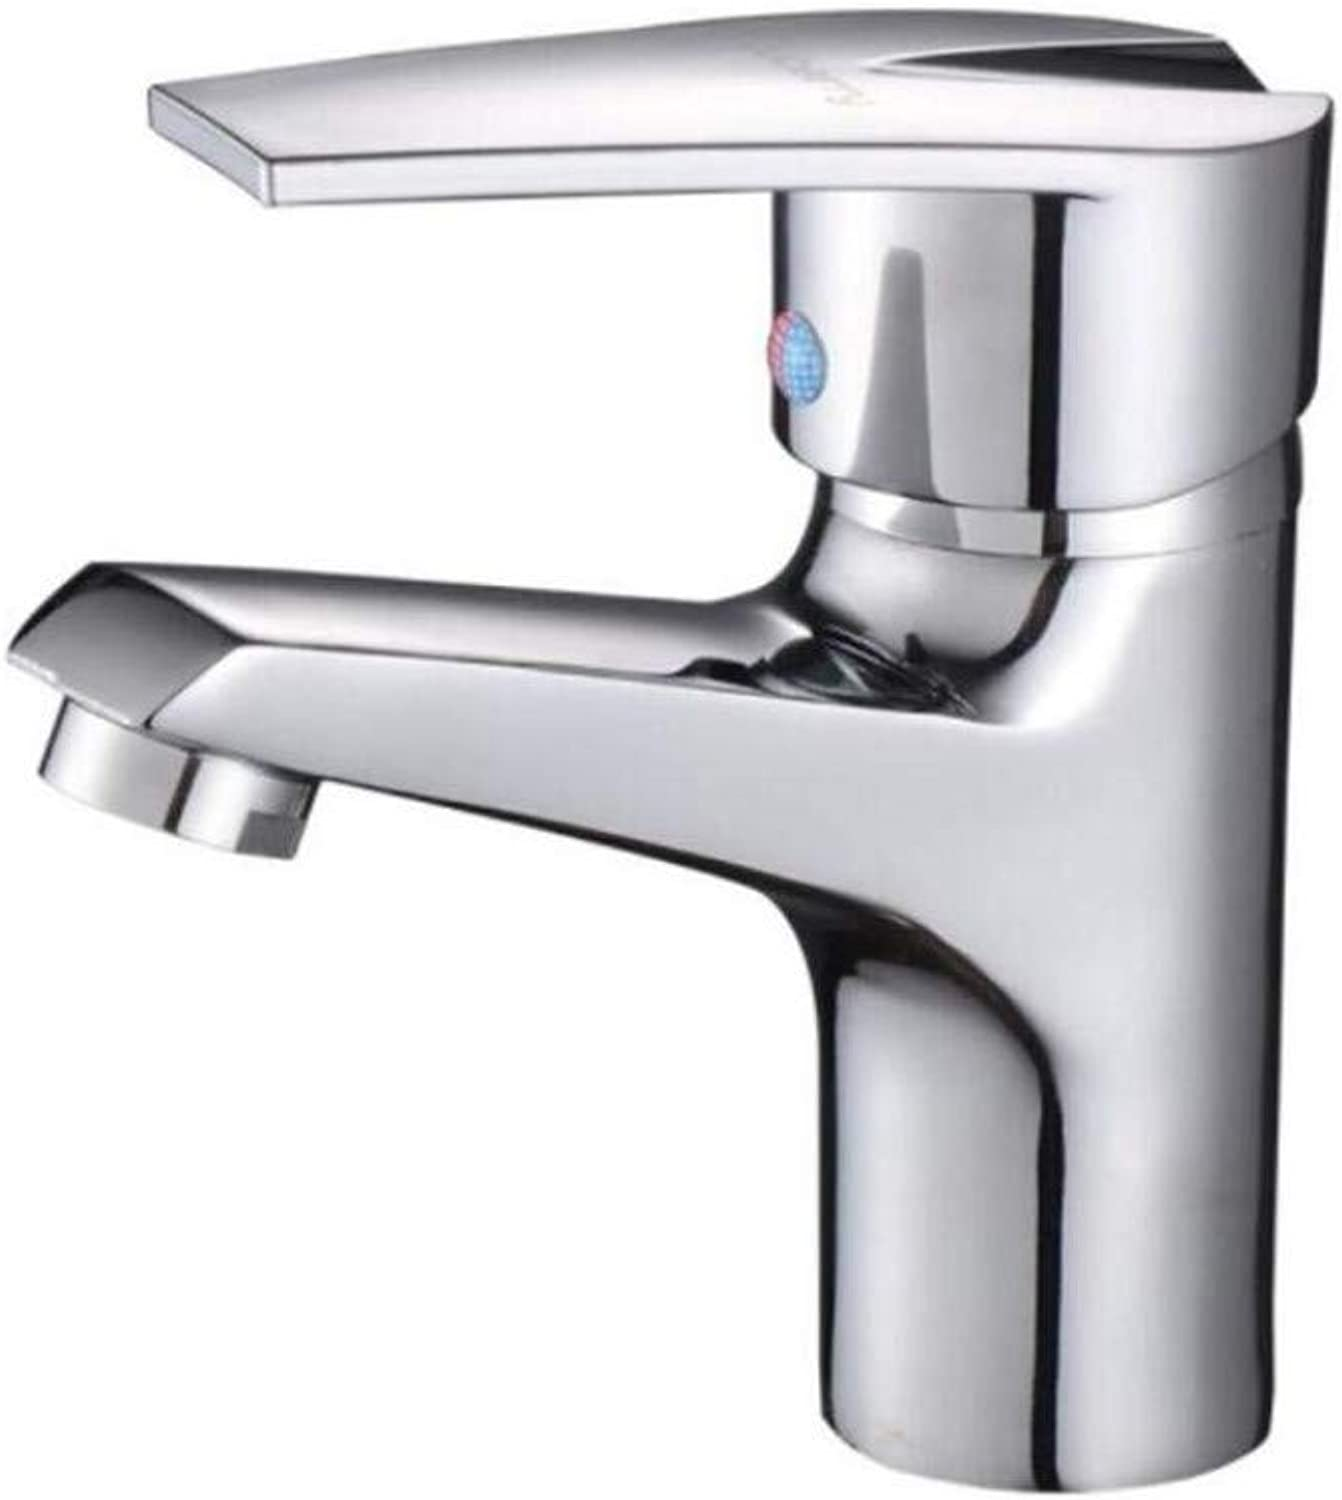 Taps Kitchen Sinktaps Mixer Swivel Faucet Sink Faucet Bathroom Copper Main Body